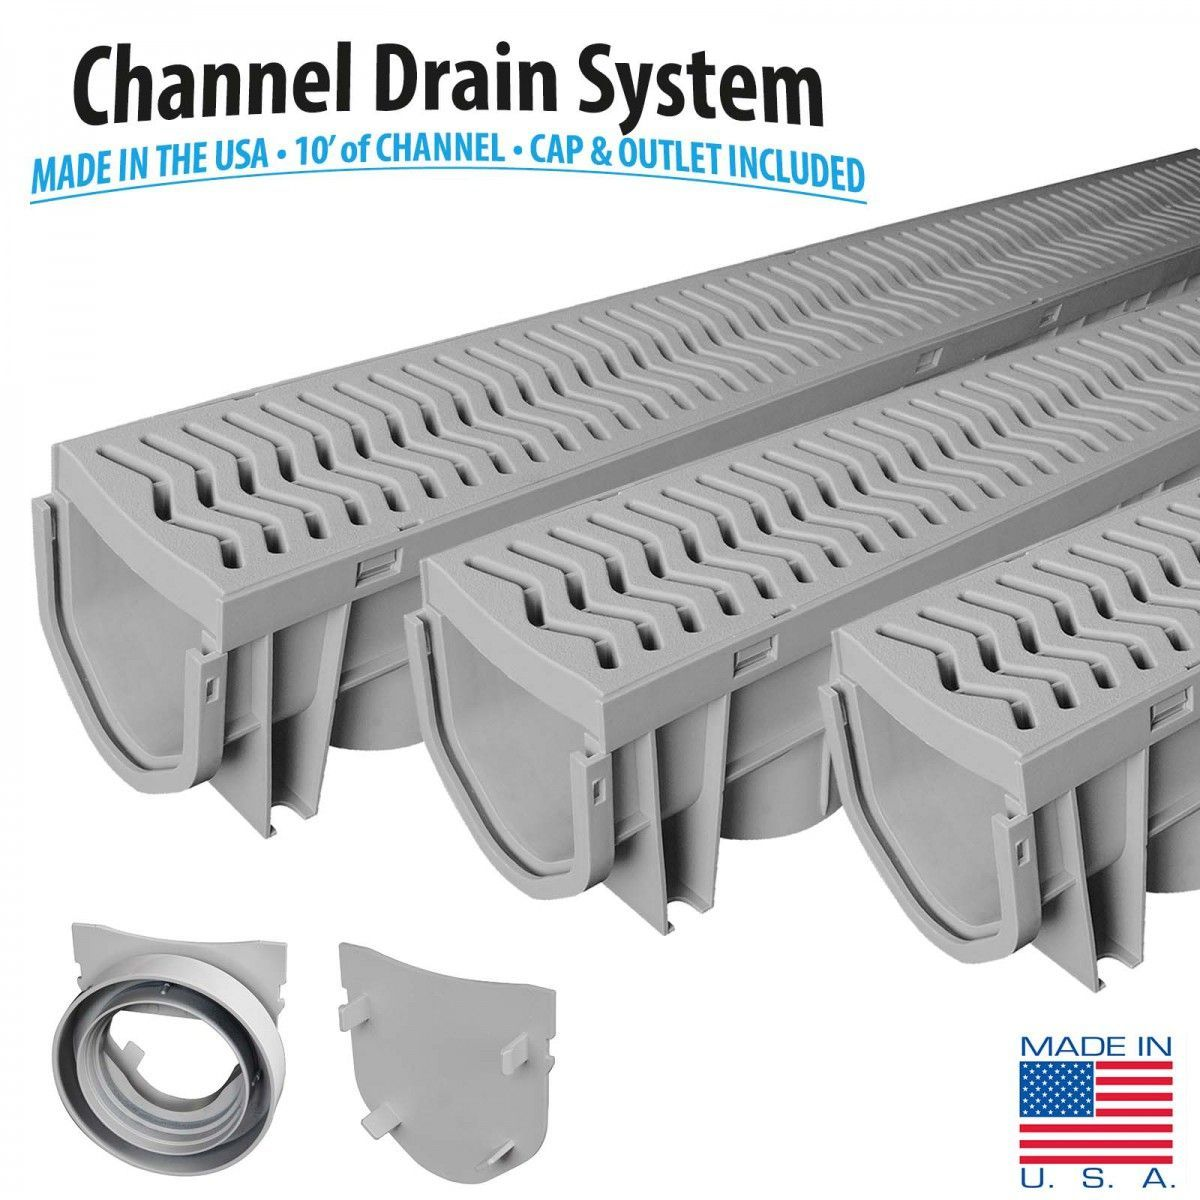 Source 1 Drainage S1e Plcd 3pk 3 Pack Trench Driveway Channel Drain System With Grates In 2019 Basement Flooding Solutions Trench Drain Driveway Drain